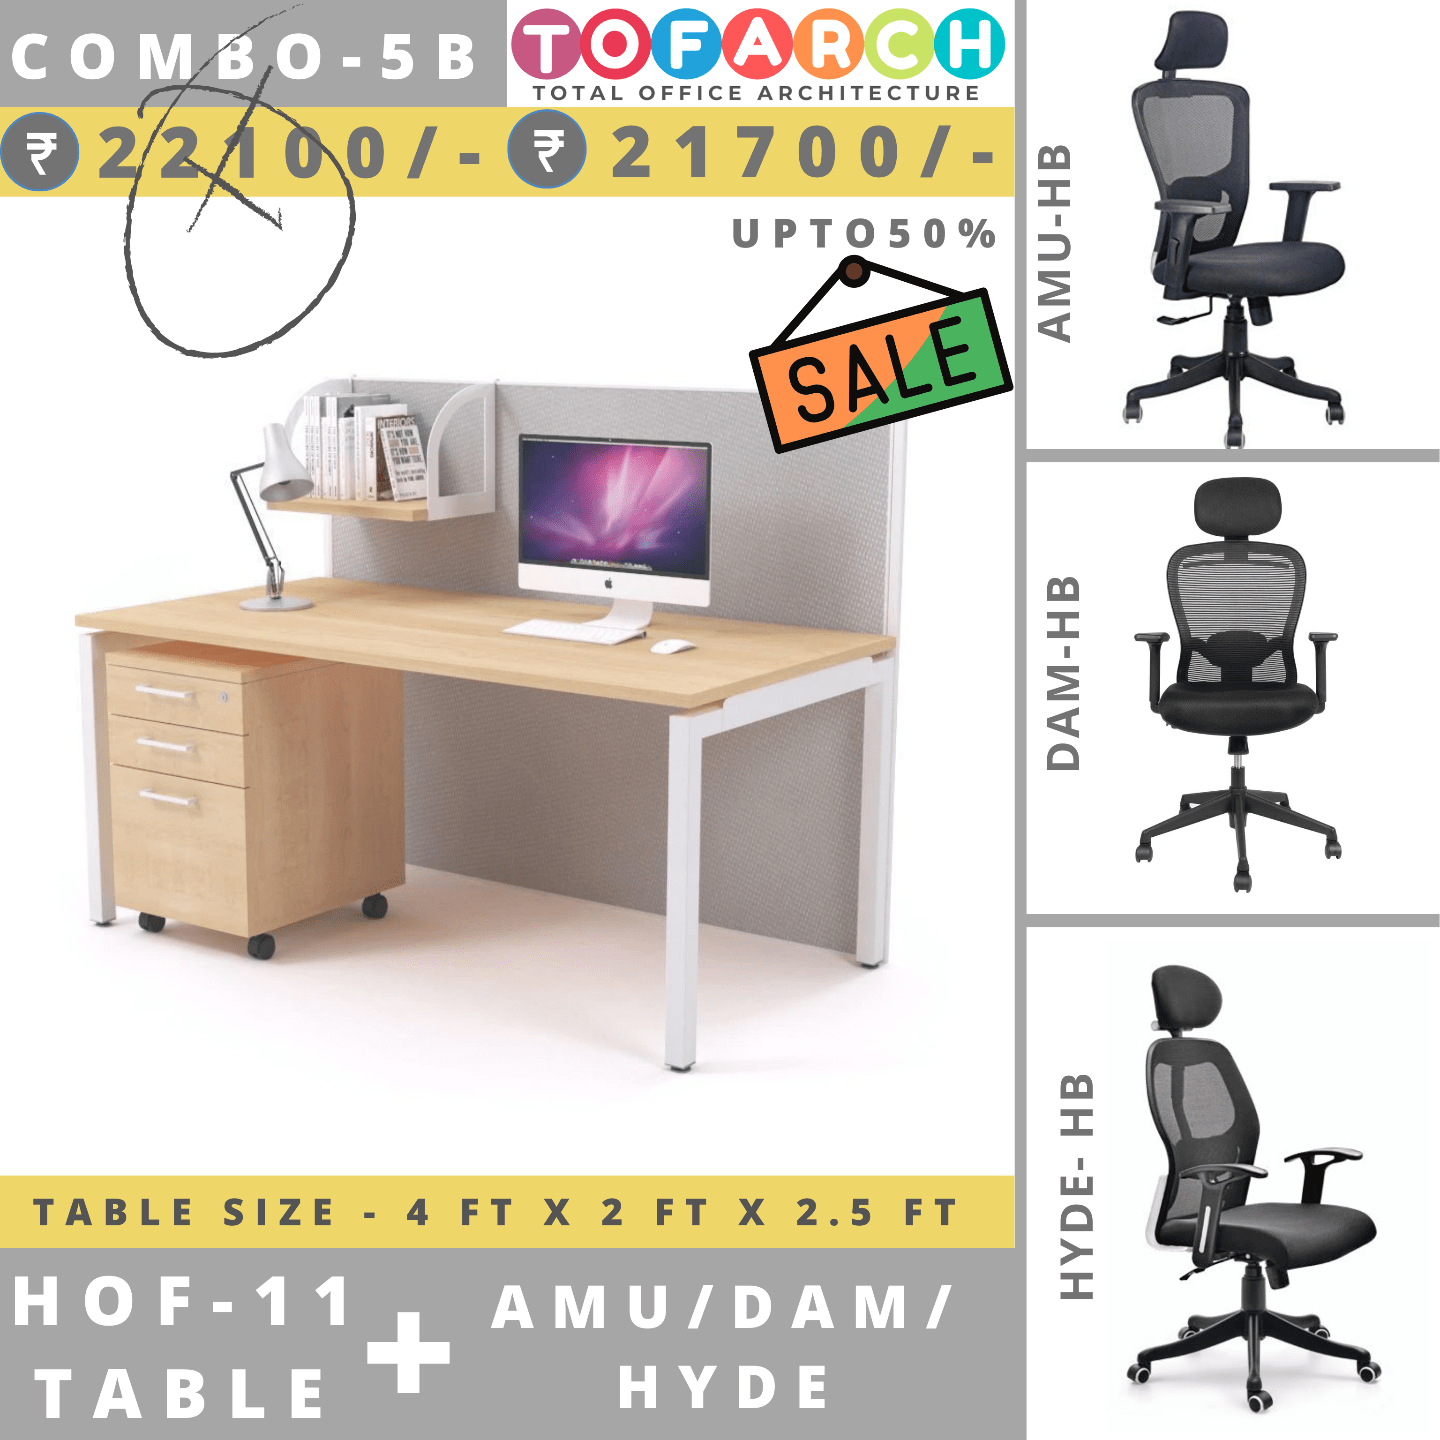 Table Chair Combo - 5B (HOF 11 Table + AMU / DAM / HYDE Chair)